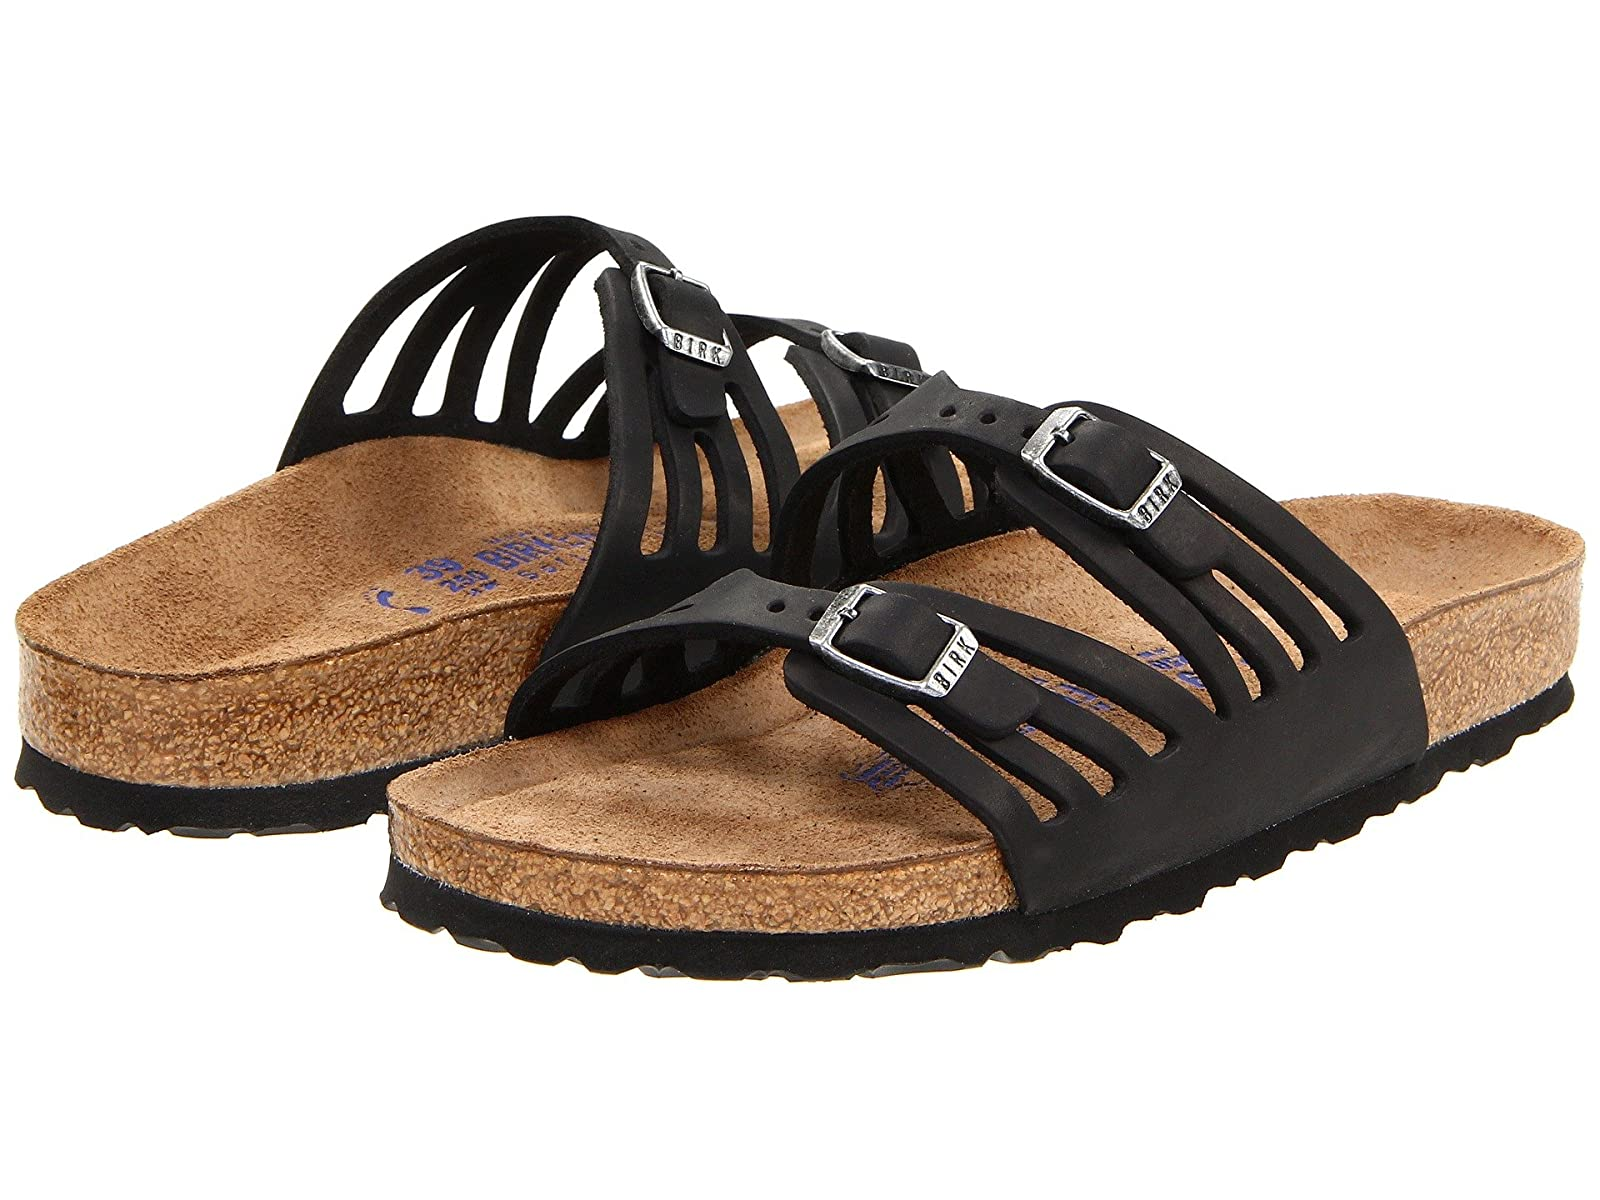 Men Womenbirkenstock Granada Soft Footbed Tidal List Of Tendencies Sandals 2 Strap Brown 41 Shoes 1d987e